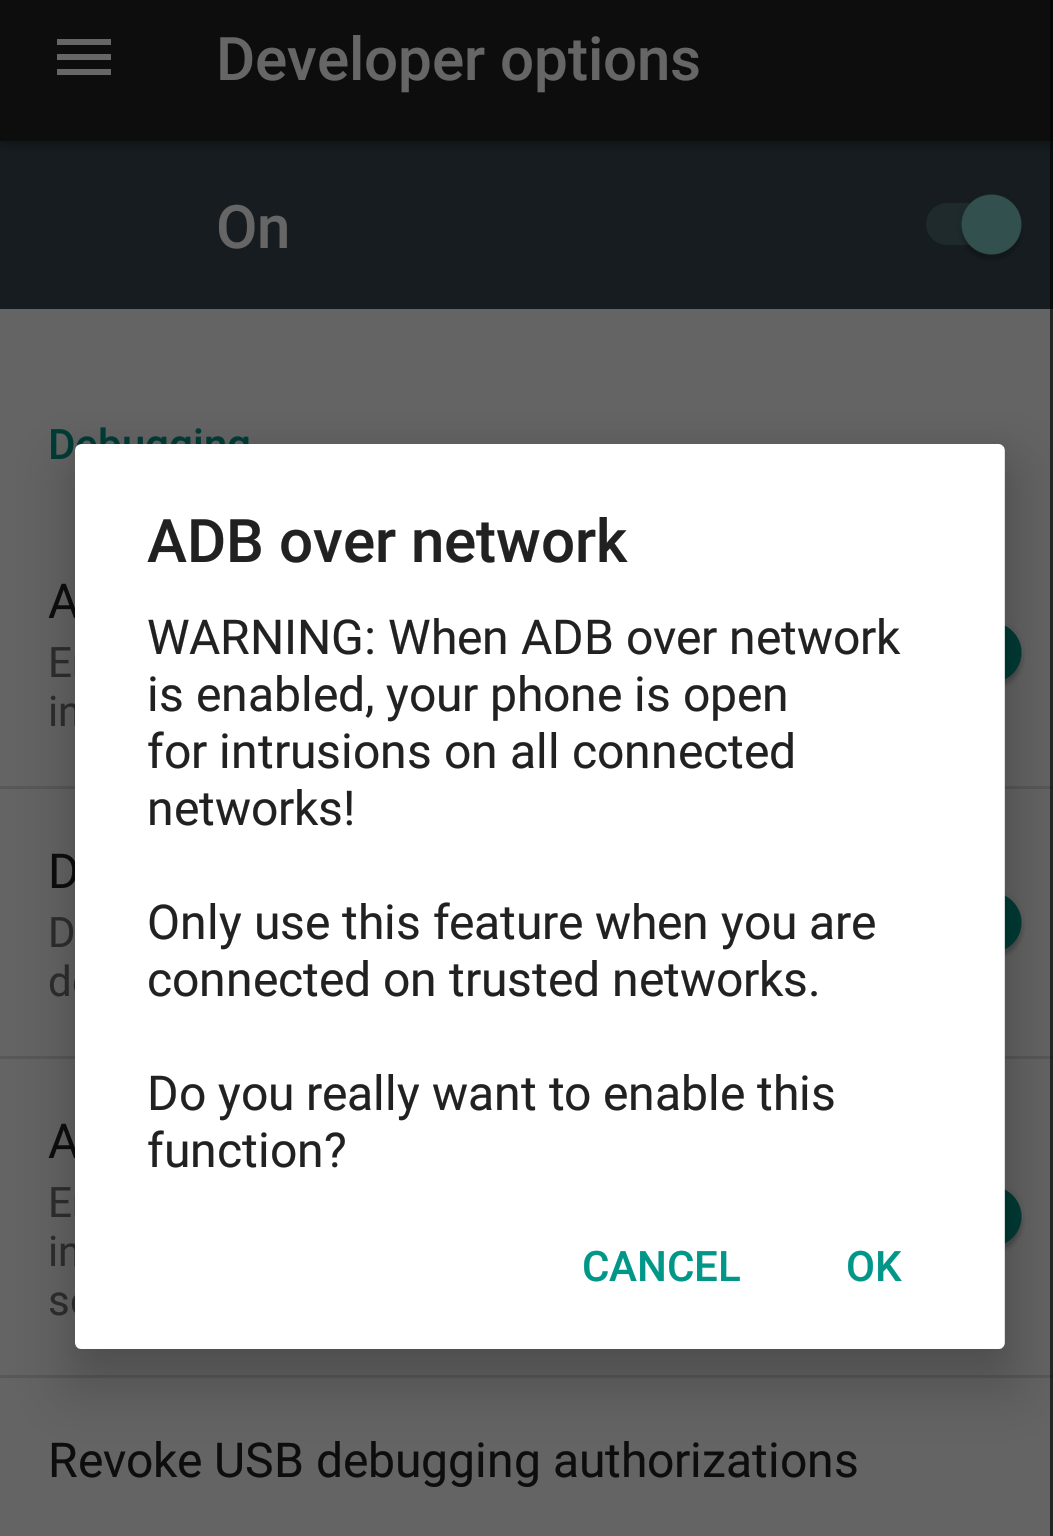 Hide and Seek Botnet Adds Infection Vector for Android Devices